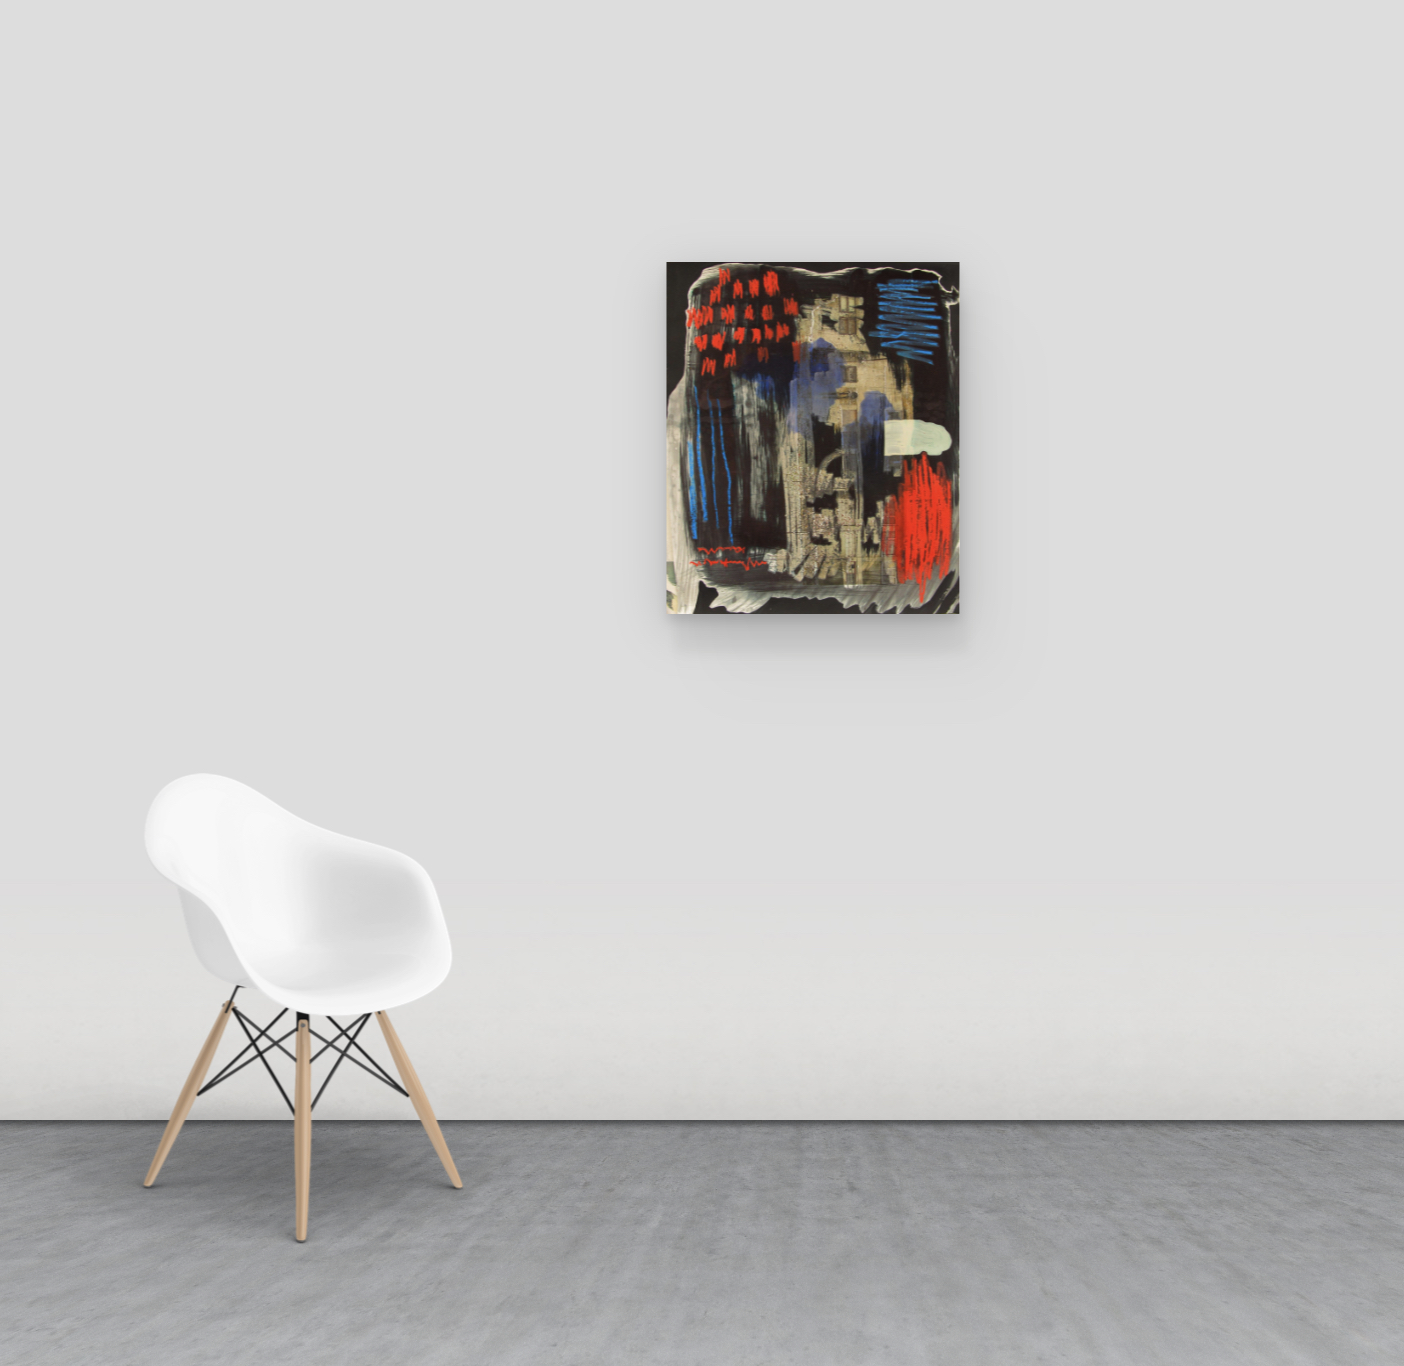 alexandra feusi, young artist to collect, painting on the wall,